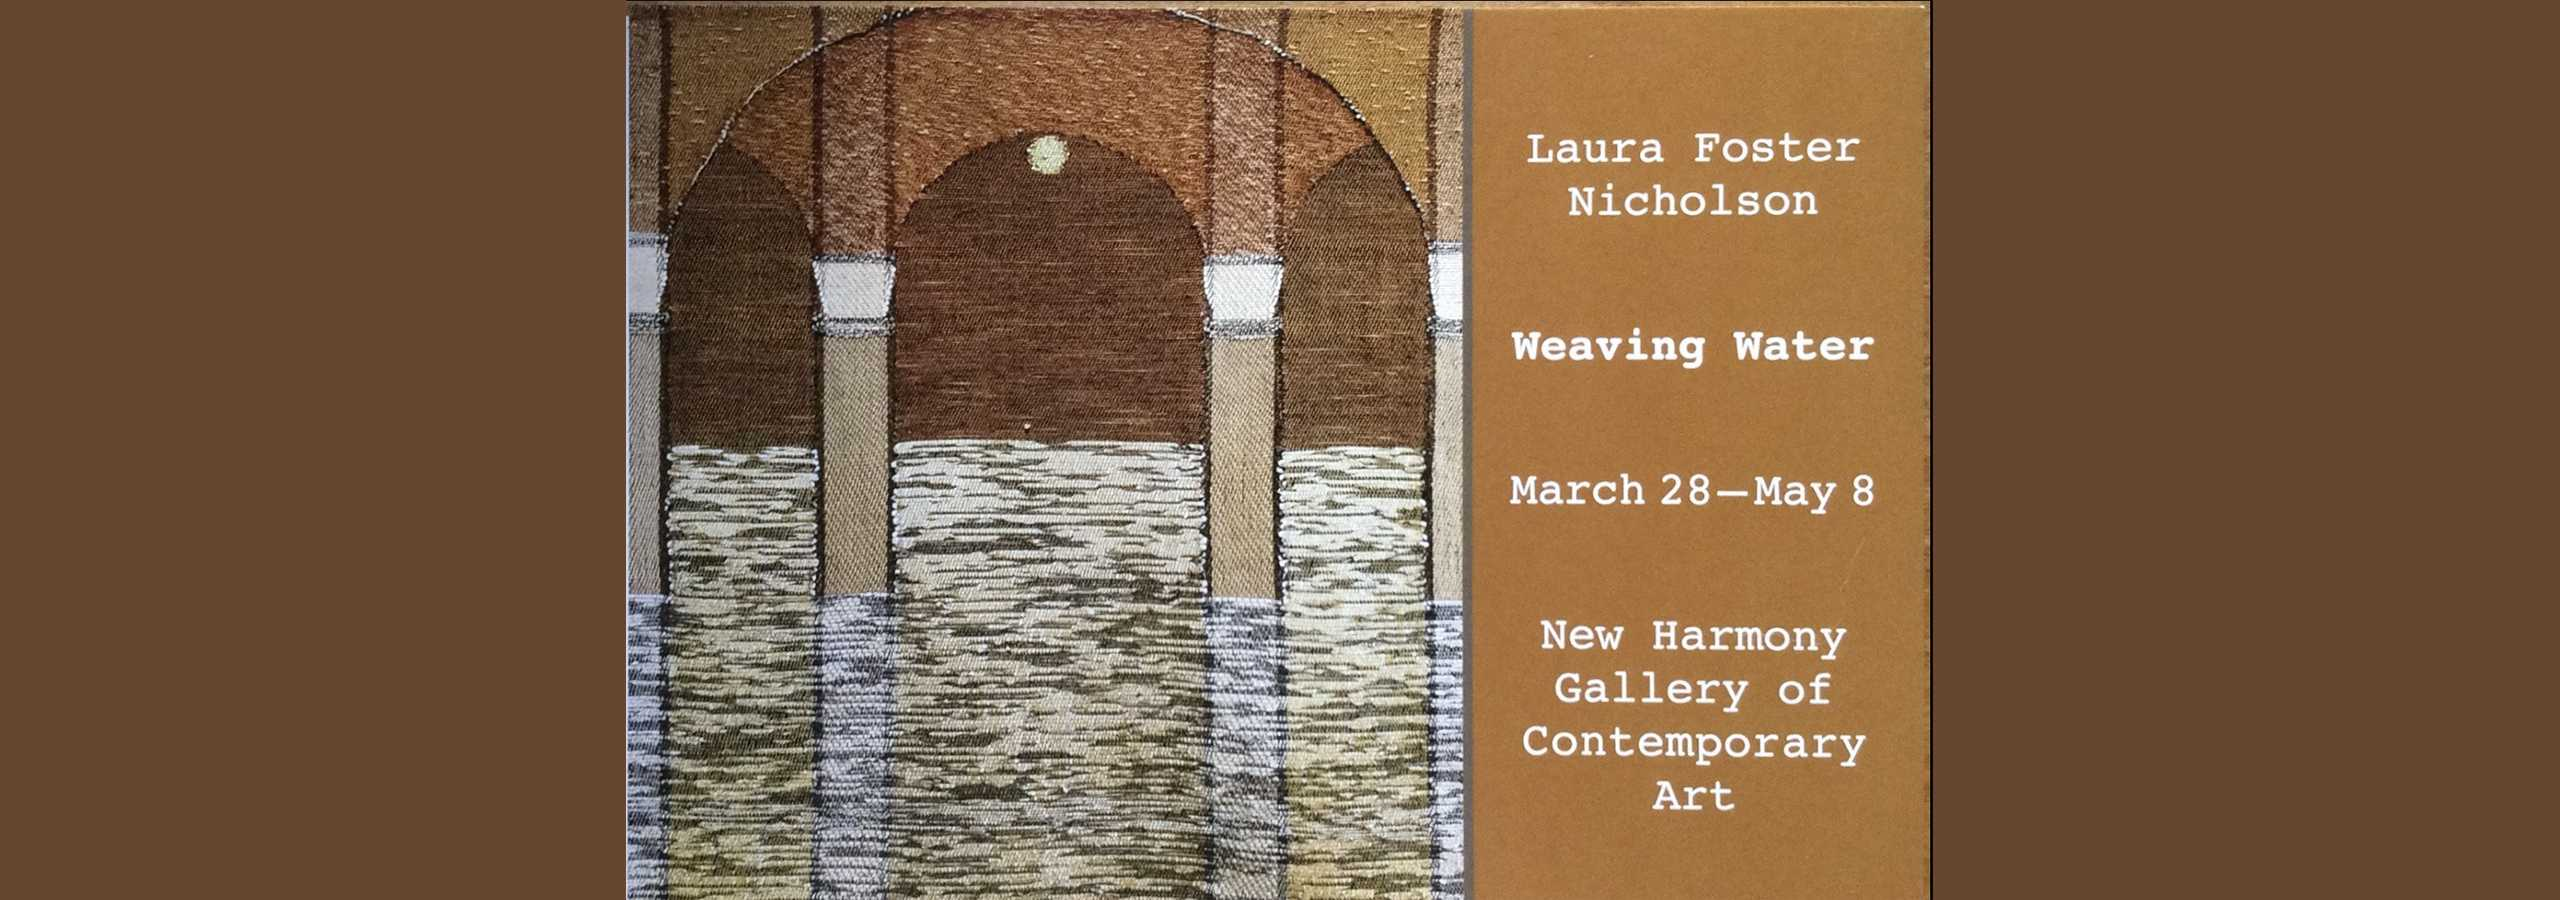 Weaving Water Exhibit by Laura Foster Nicholson at the NHGCA